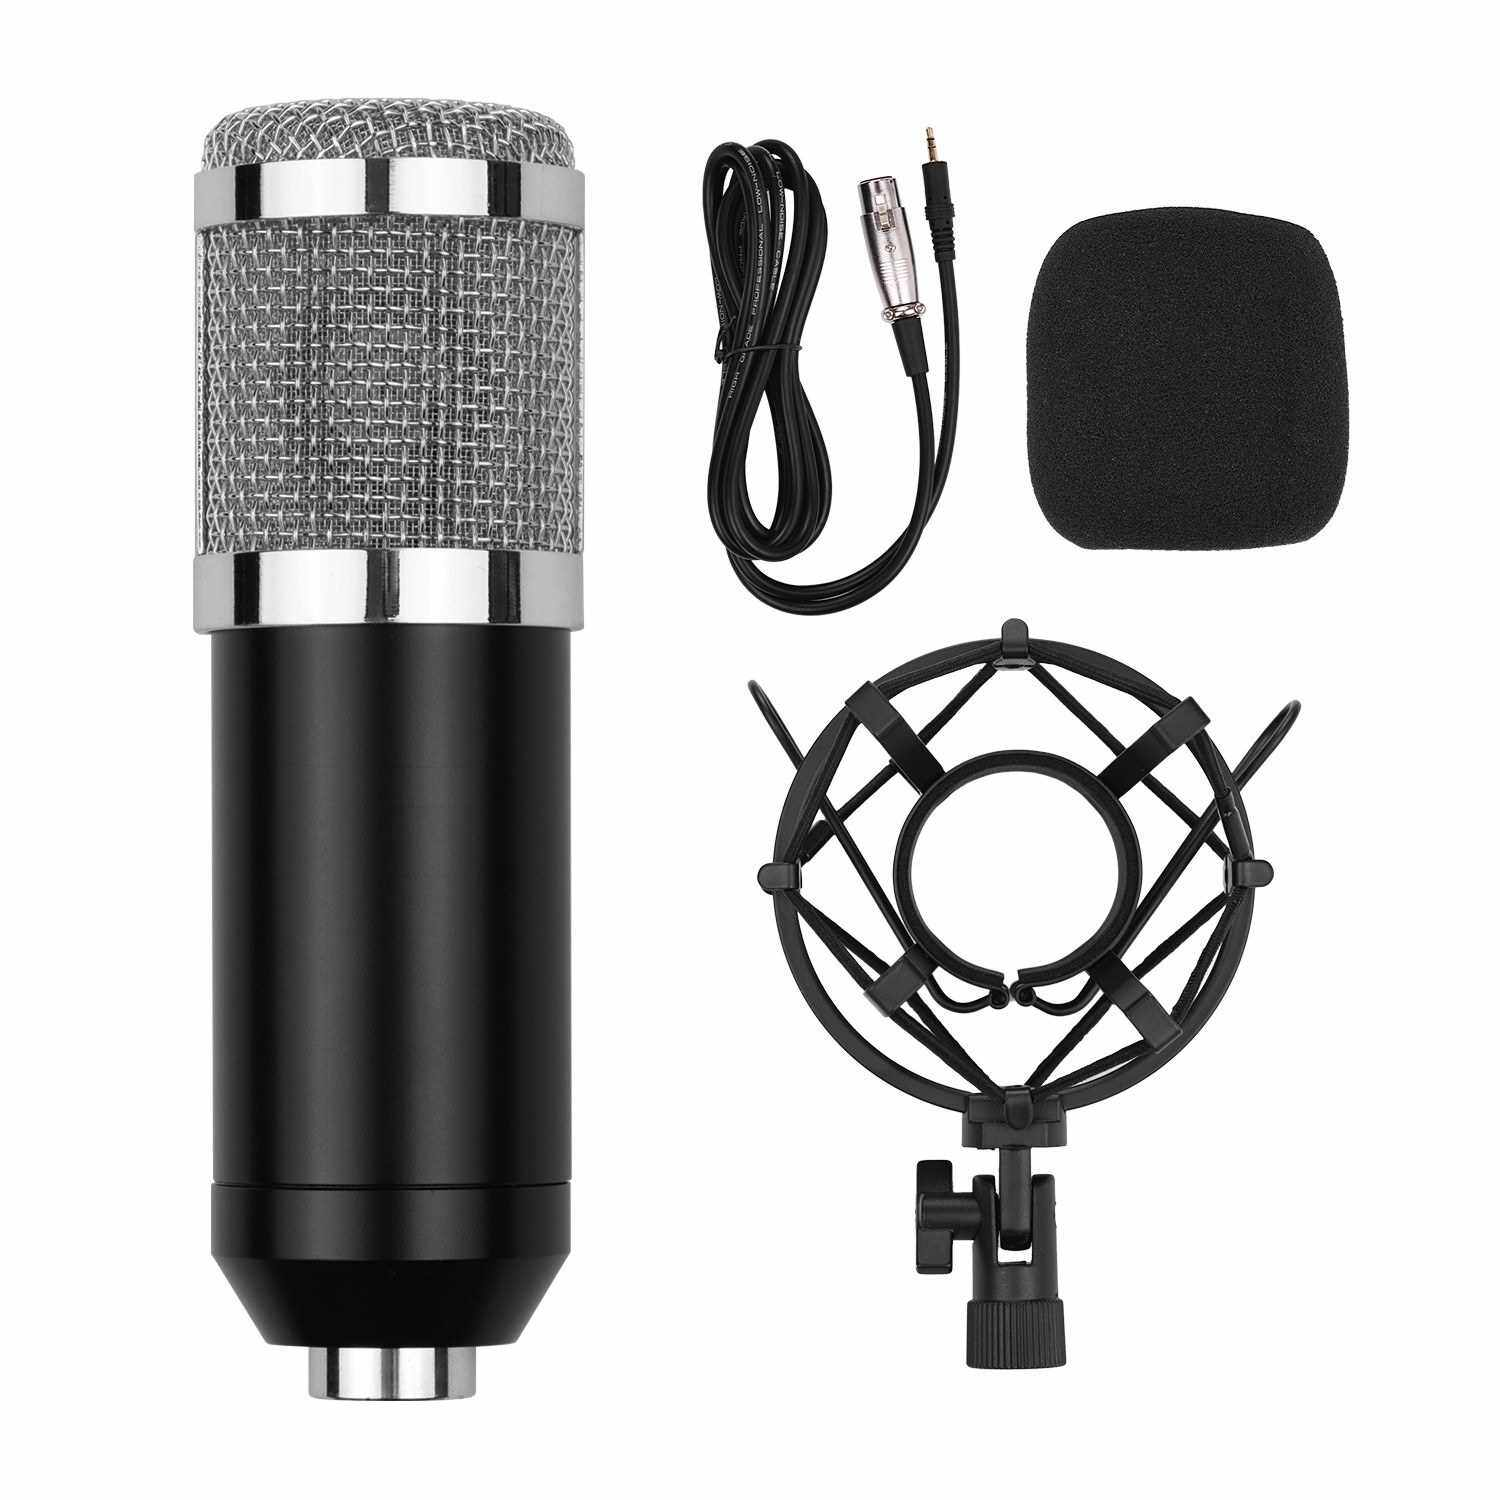 Professional Cardioid Condenser Microphone Kit with Audio Cable Metal Shockproof Clamp High Sensitivity Low Noise Mic for Vocal Piano Instrument Live Streaming Broadcasting Silver (Silver&Black)